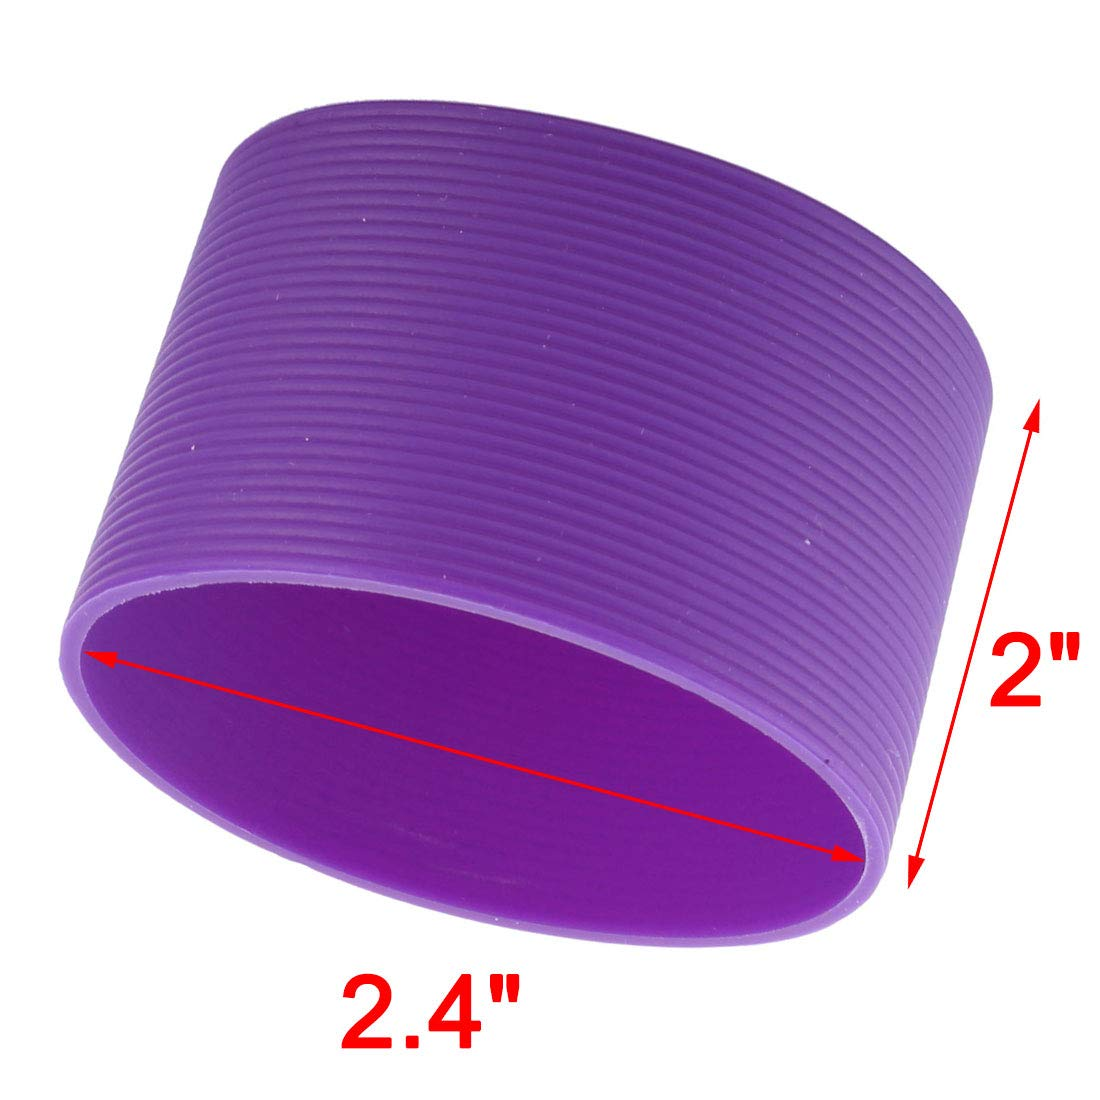 uxcell/® Silicone Round Heat Insulated Water Cup Sleeve Protector Cover 6.5cm Dia Purple